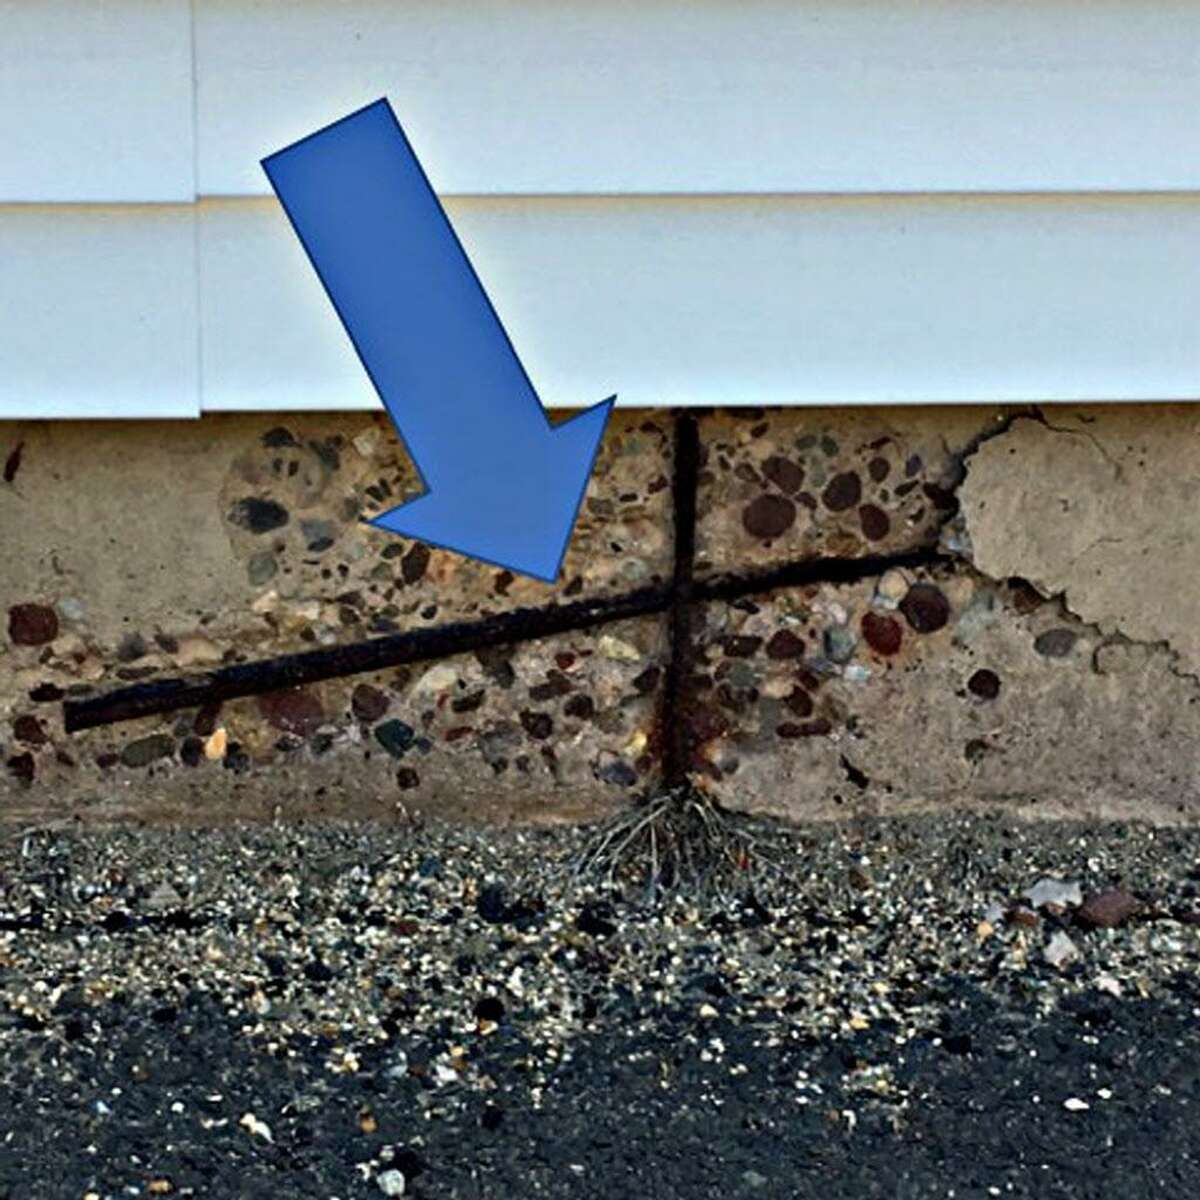 Issues at East Hampton Town Hall include corroded pipes, makeshift water mitigation system, cracks in foundation, deteriorating concrete around window wells, exposed rebar and rotted sill plates.